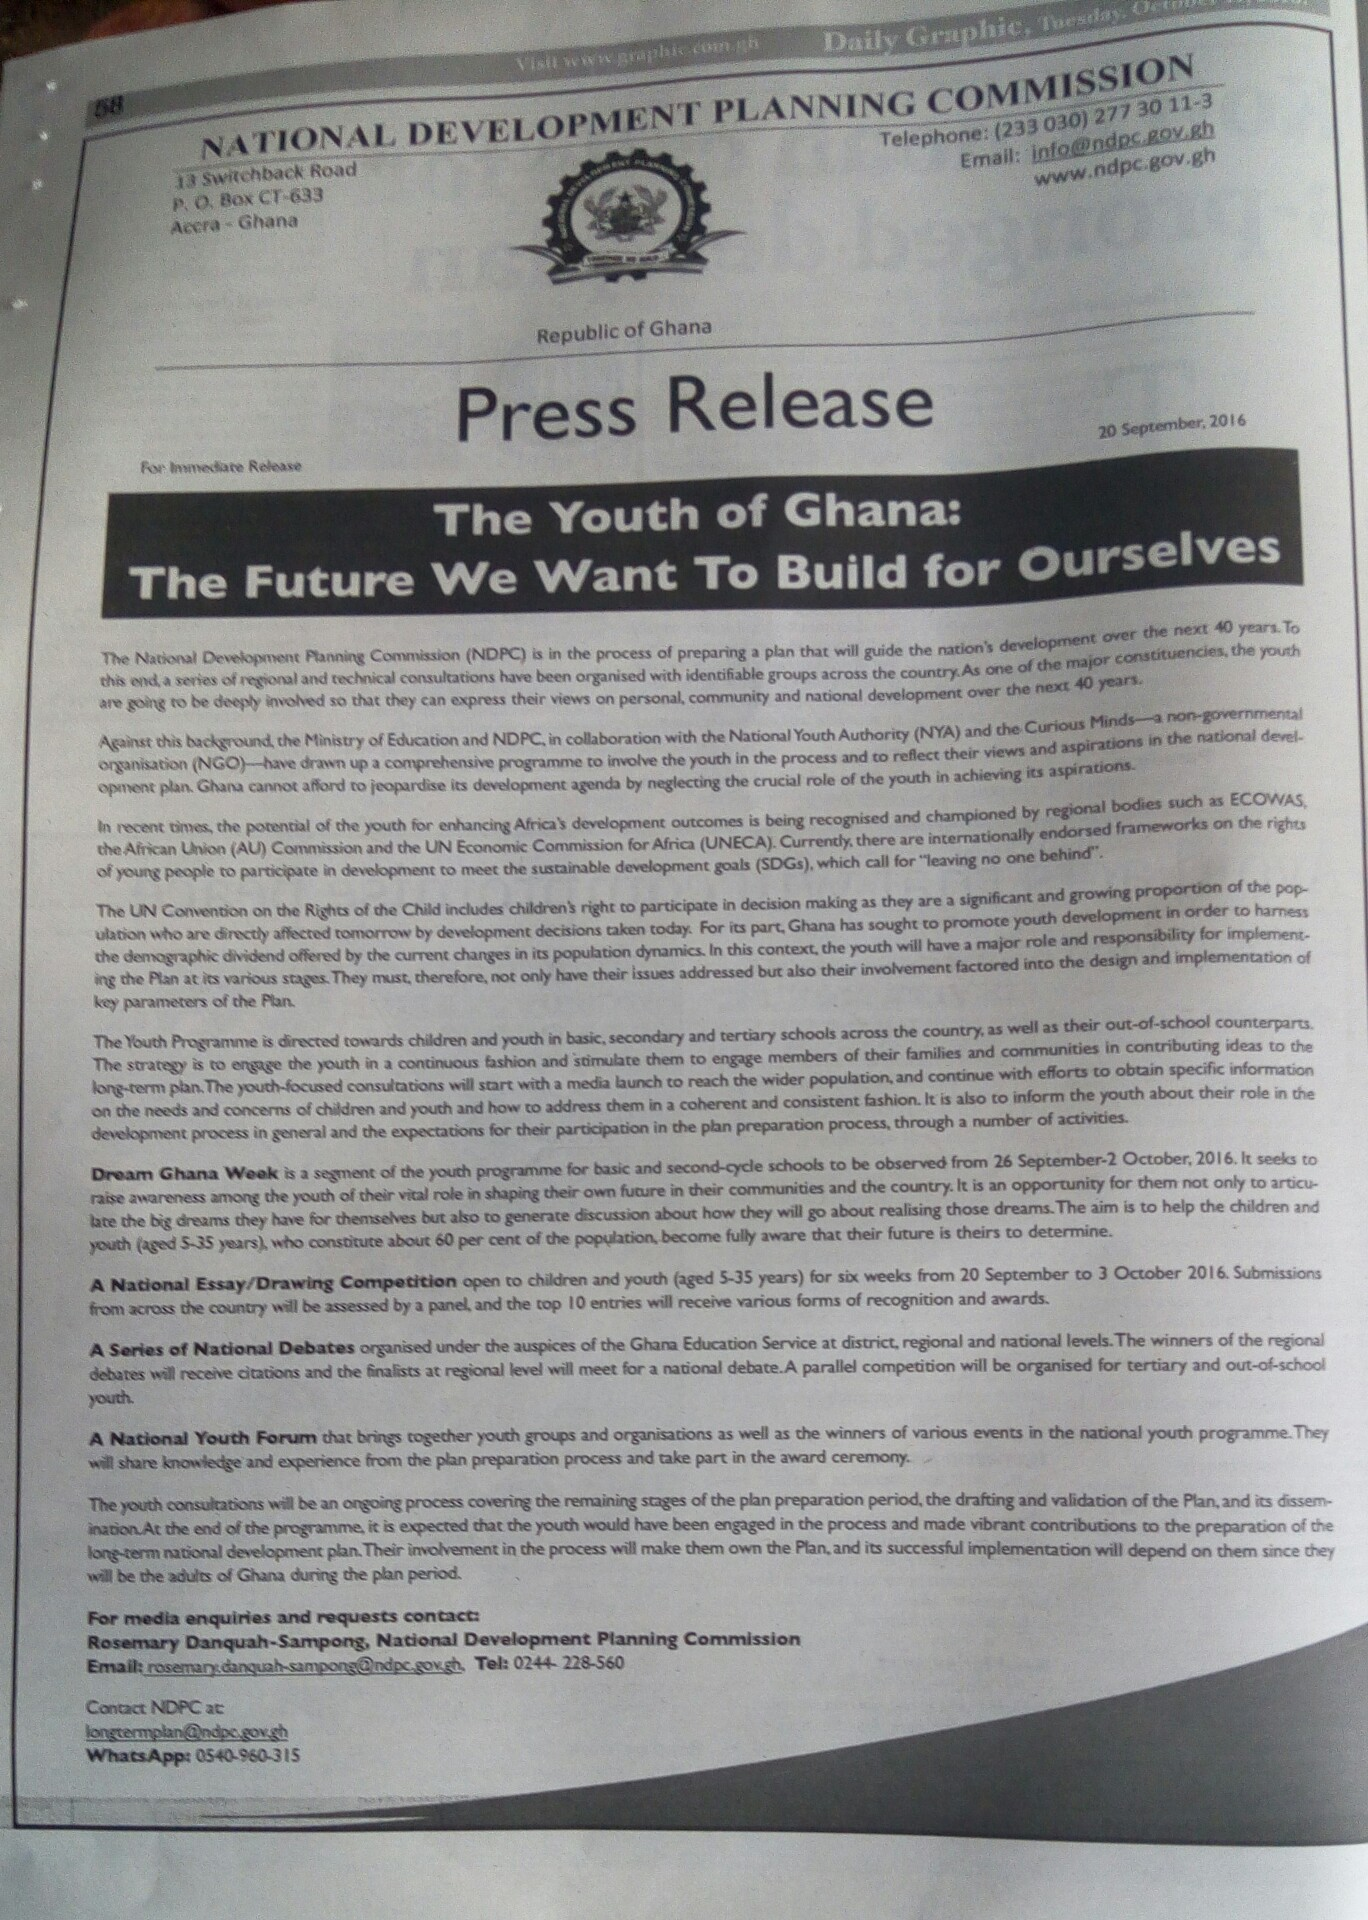 Today Newspaper Front Pages Prime News Ghana